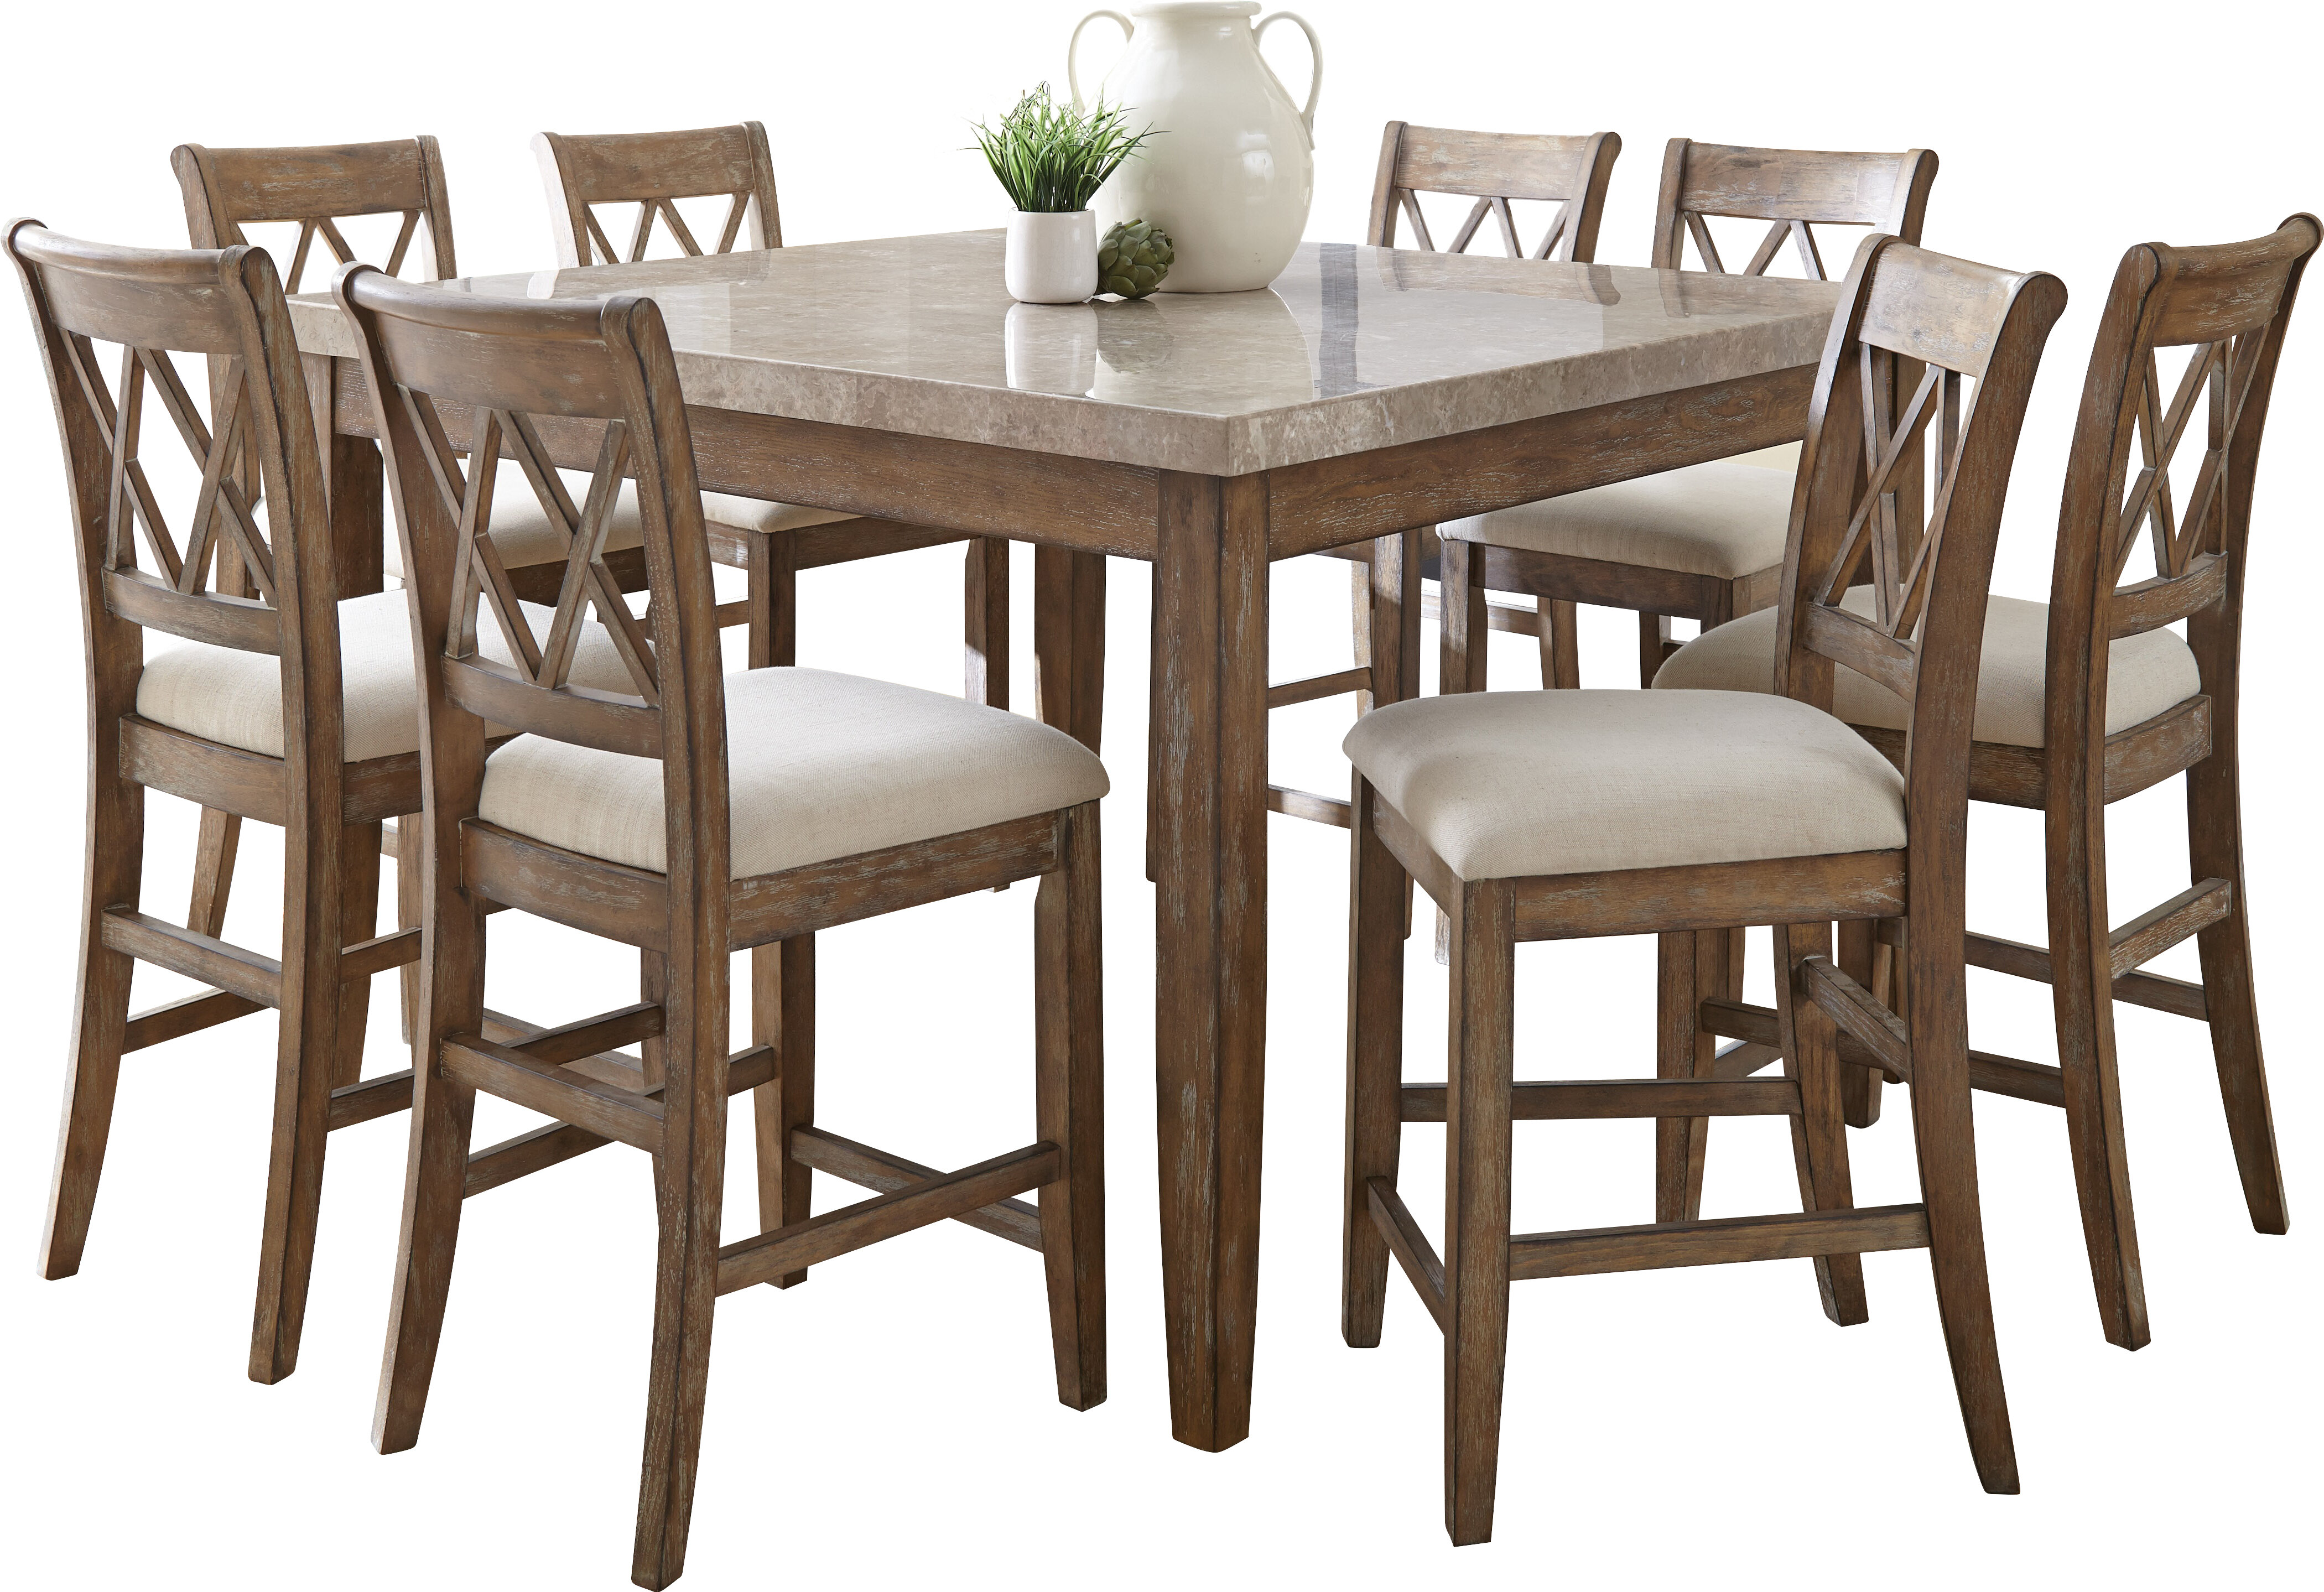 dining garden home lumina height piece set product america table tables of furniture up light counter